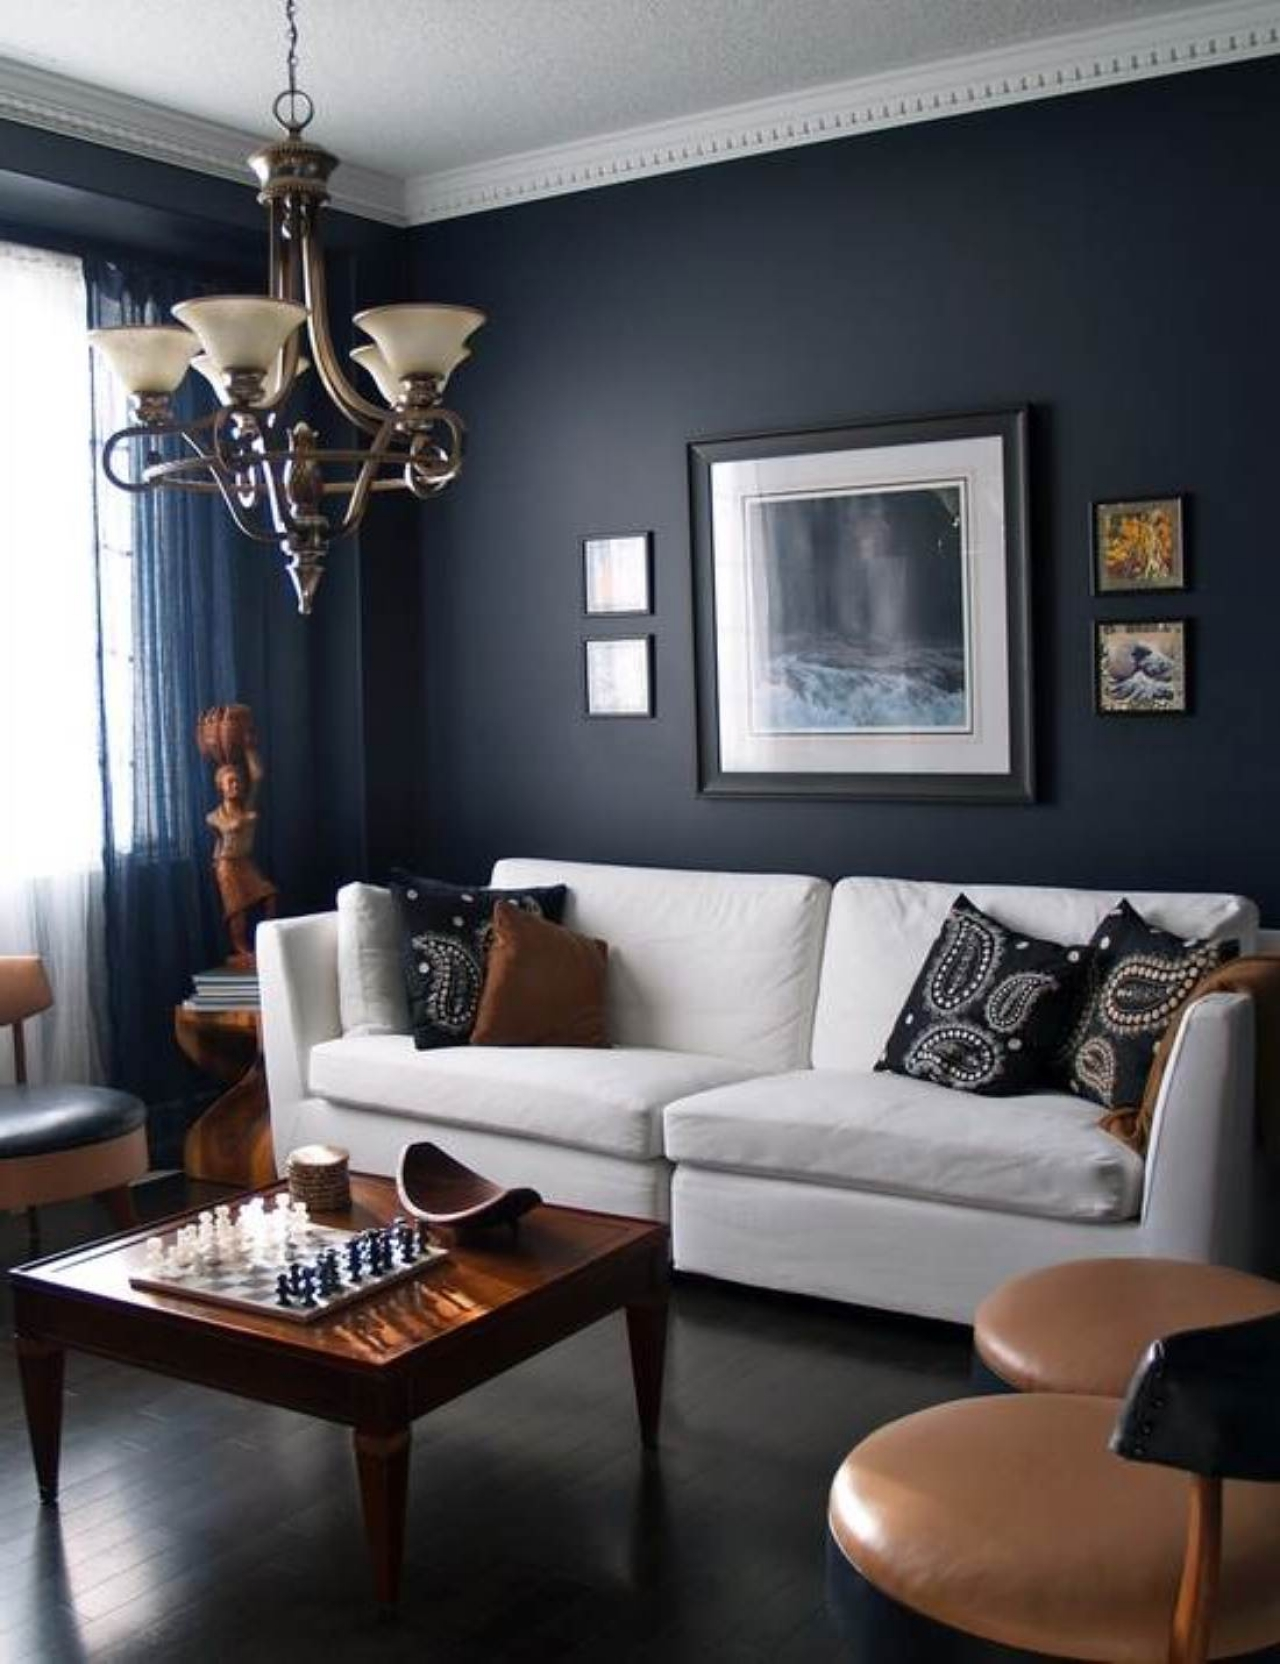 25 Simple Living Room Design Ideas To Get Inspired ...